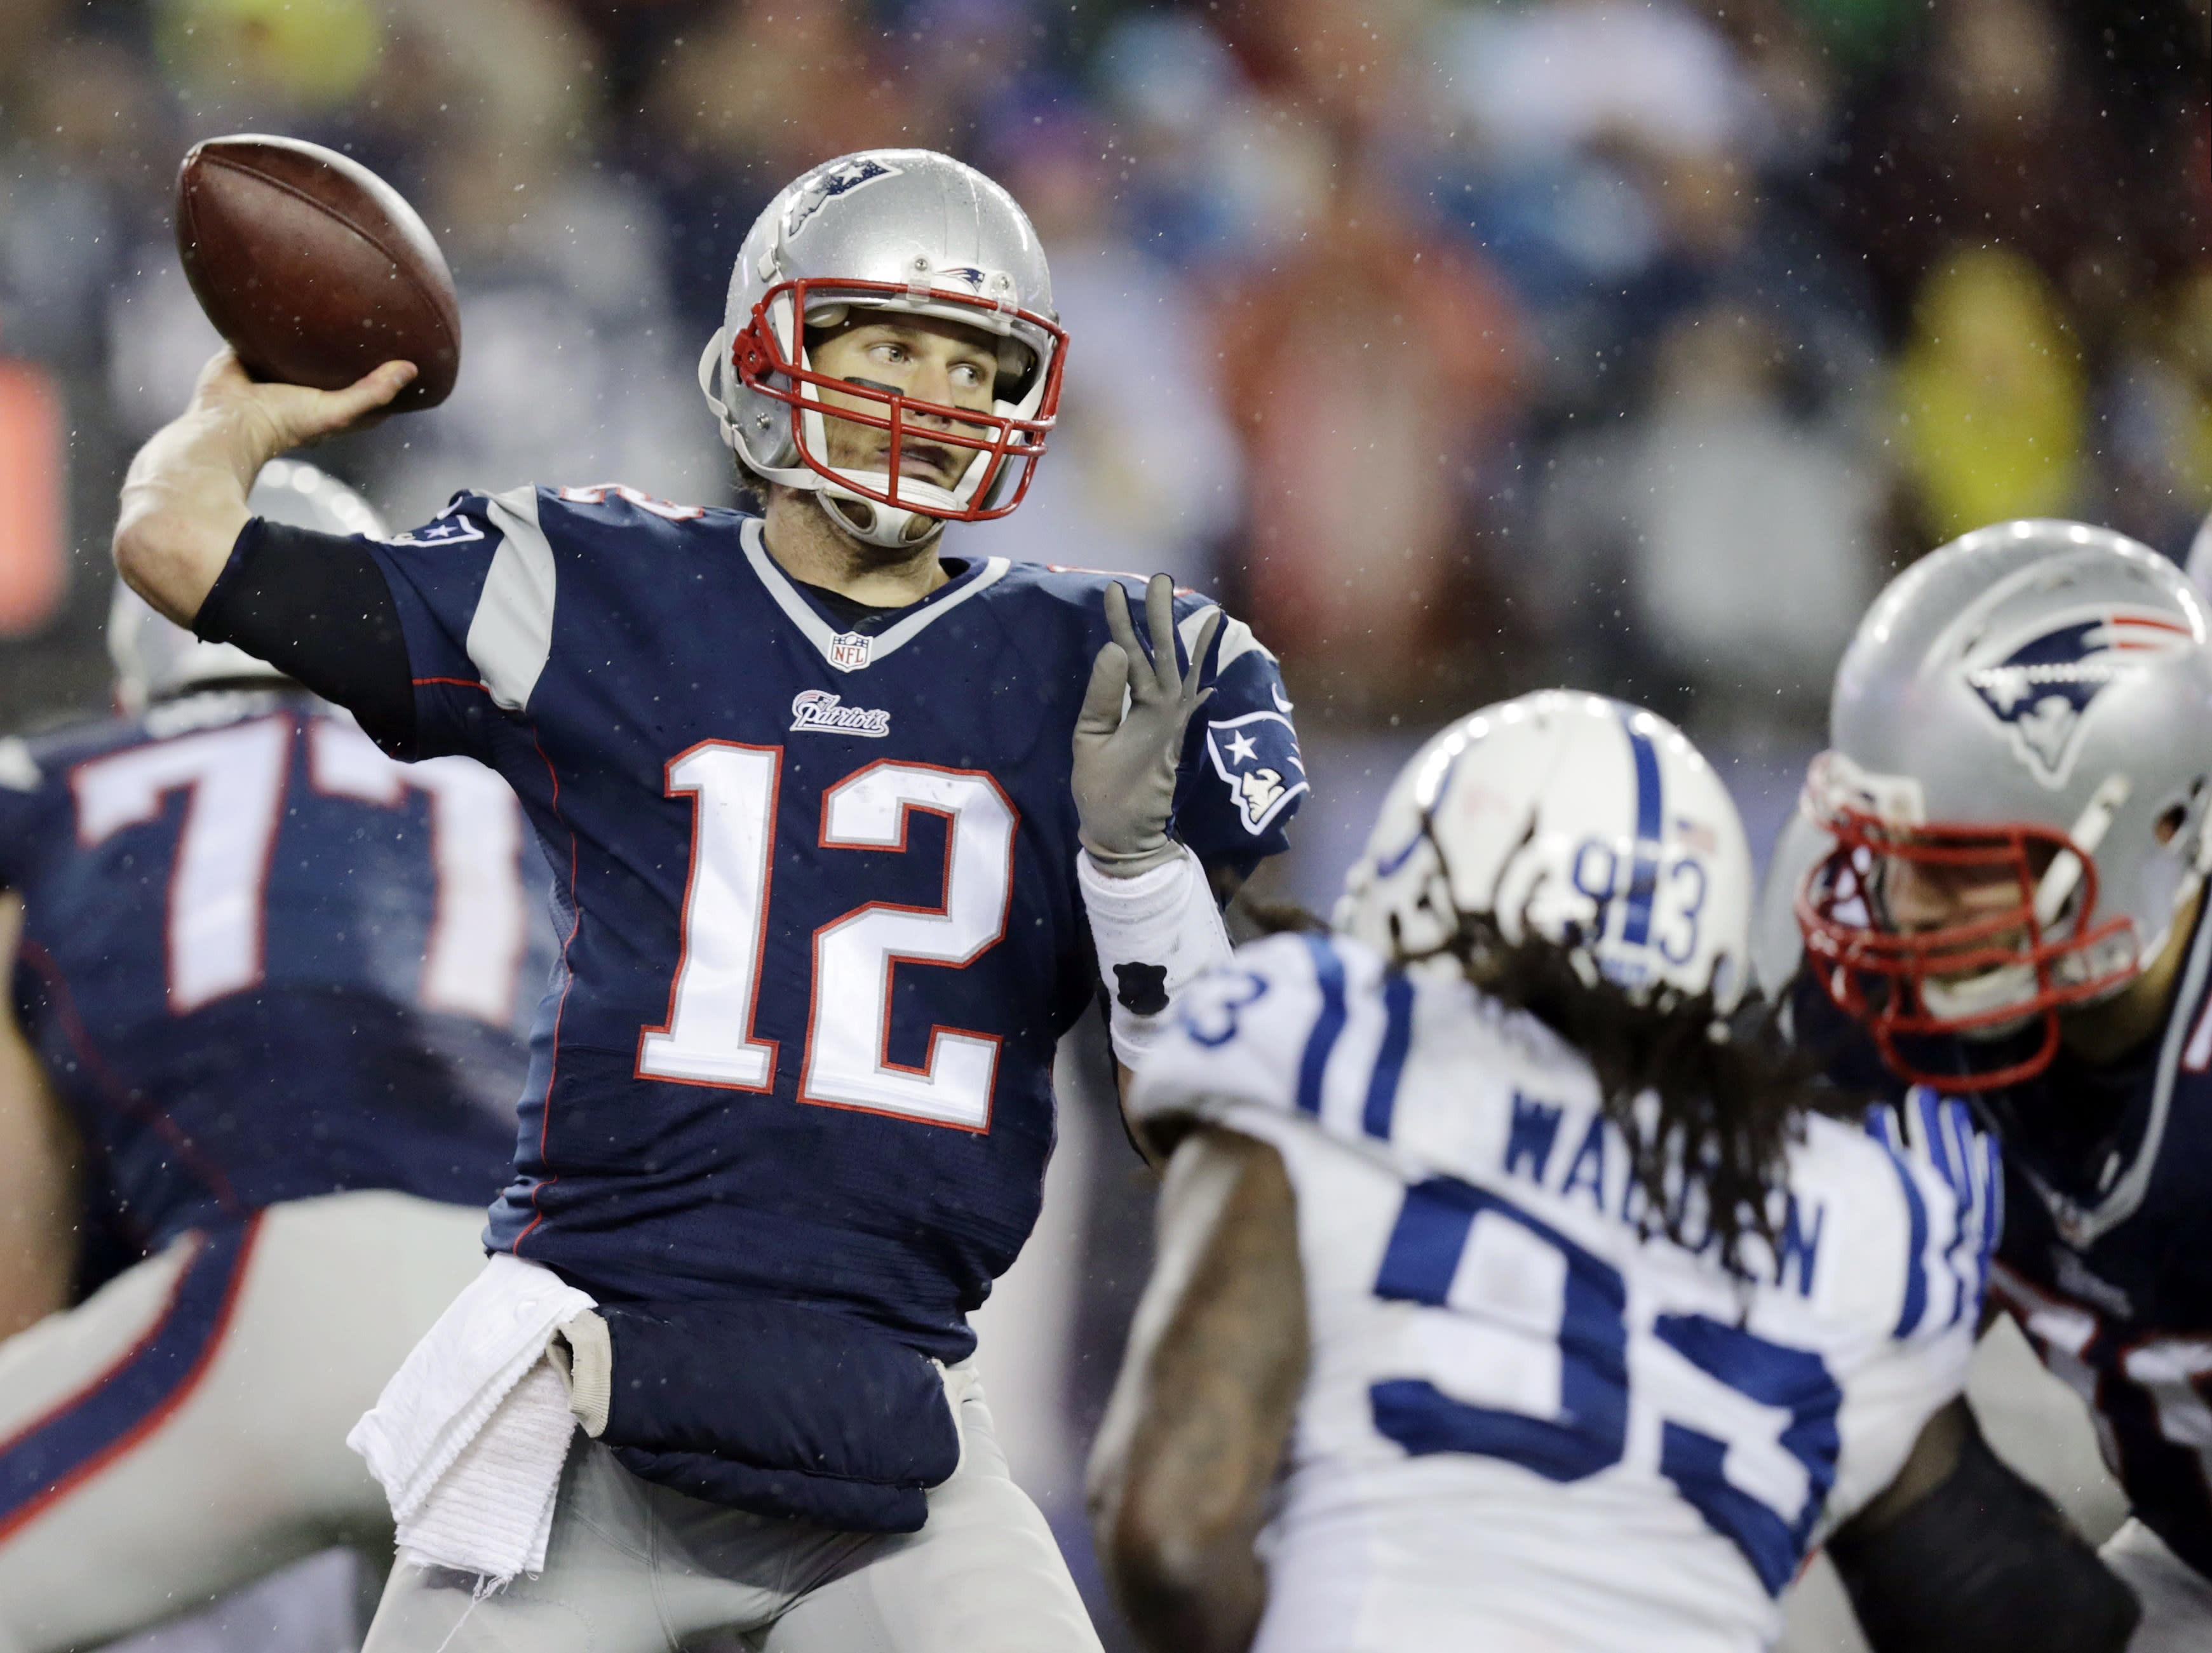 Patriots employees traded texts about deflated footballs